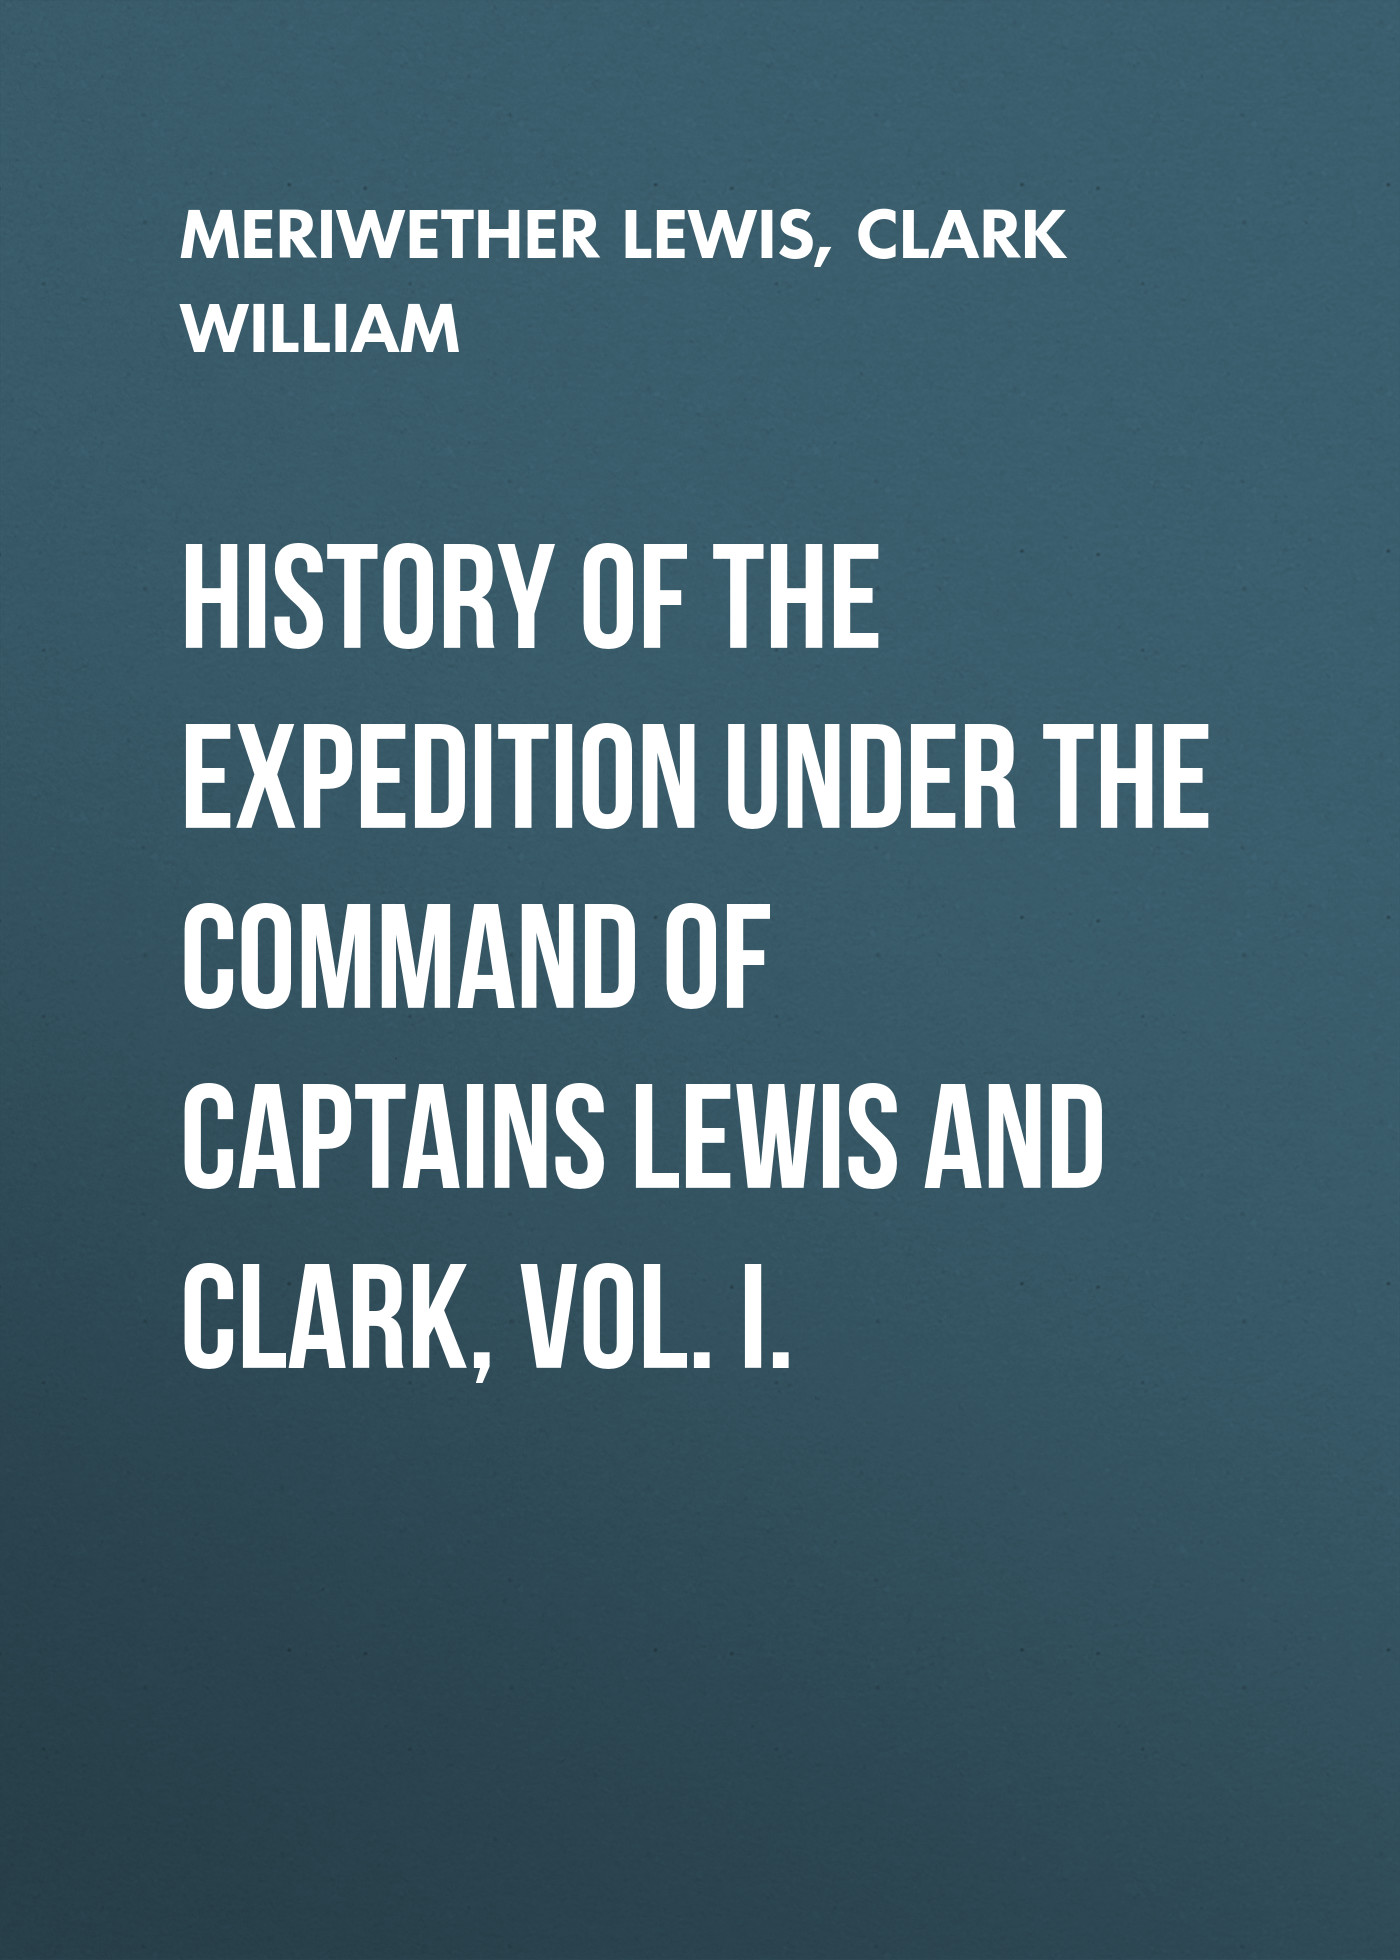 цена на Clark William History of the Expedition under the Command of Captains Lewis and Clark, Vol. I.